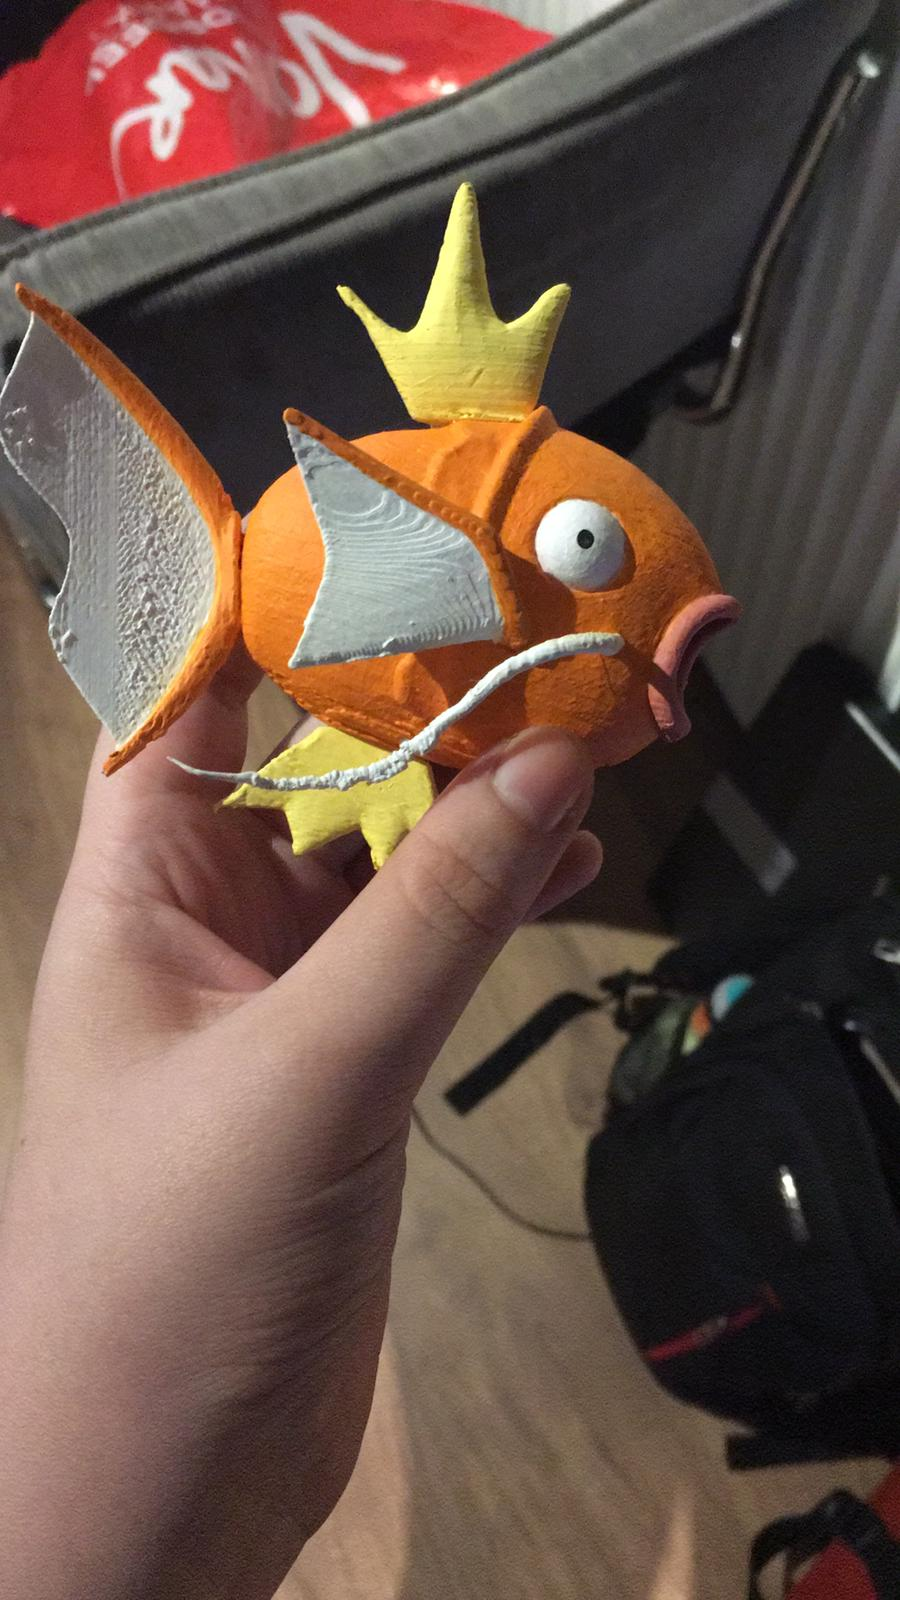 Working on Magikarp and the Container